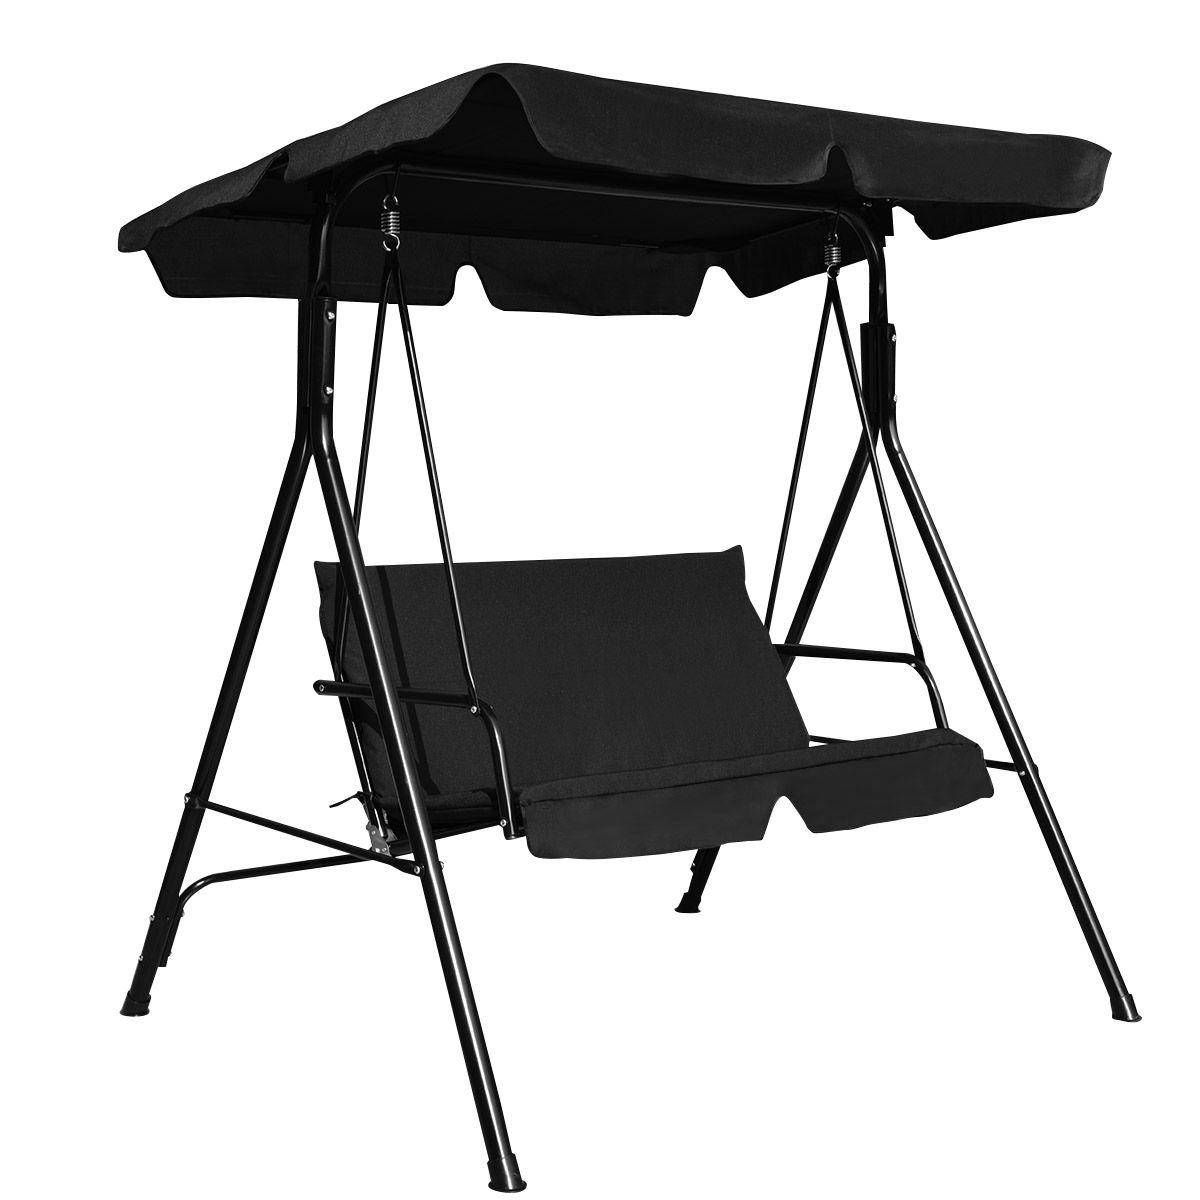 "GHP Outdoor Black 55.1""Lx43.3""Wx60.2""H Durable 2-Seats Swing Canopy Hammock Chair"